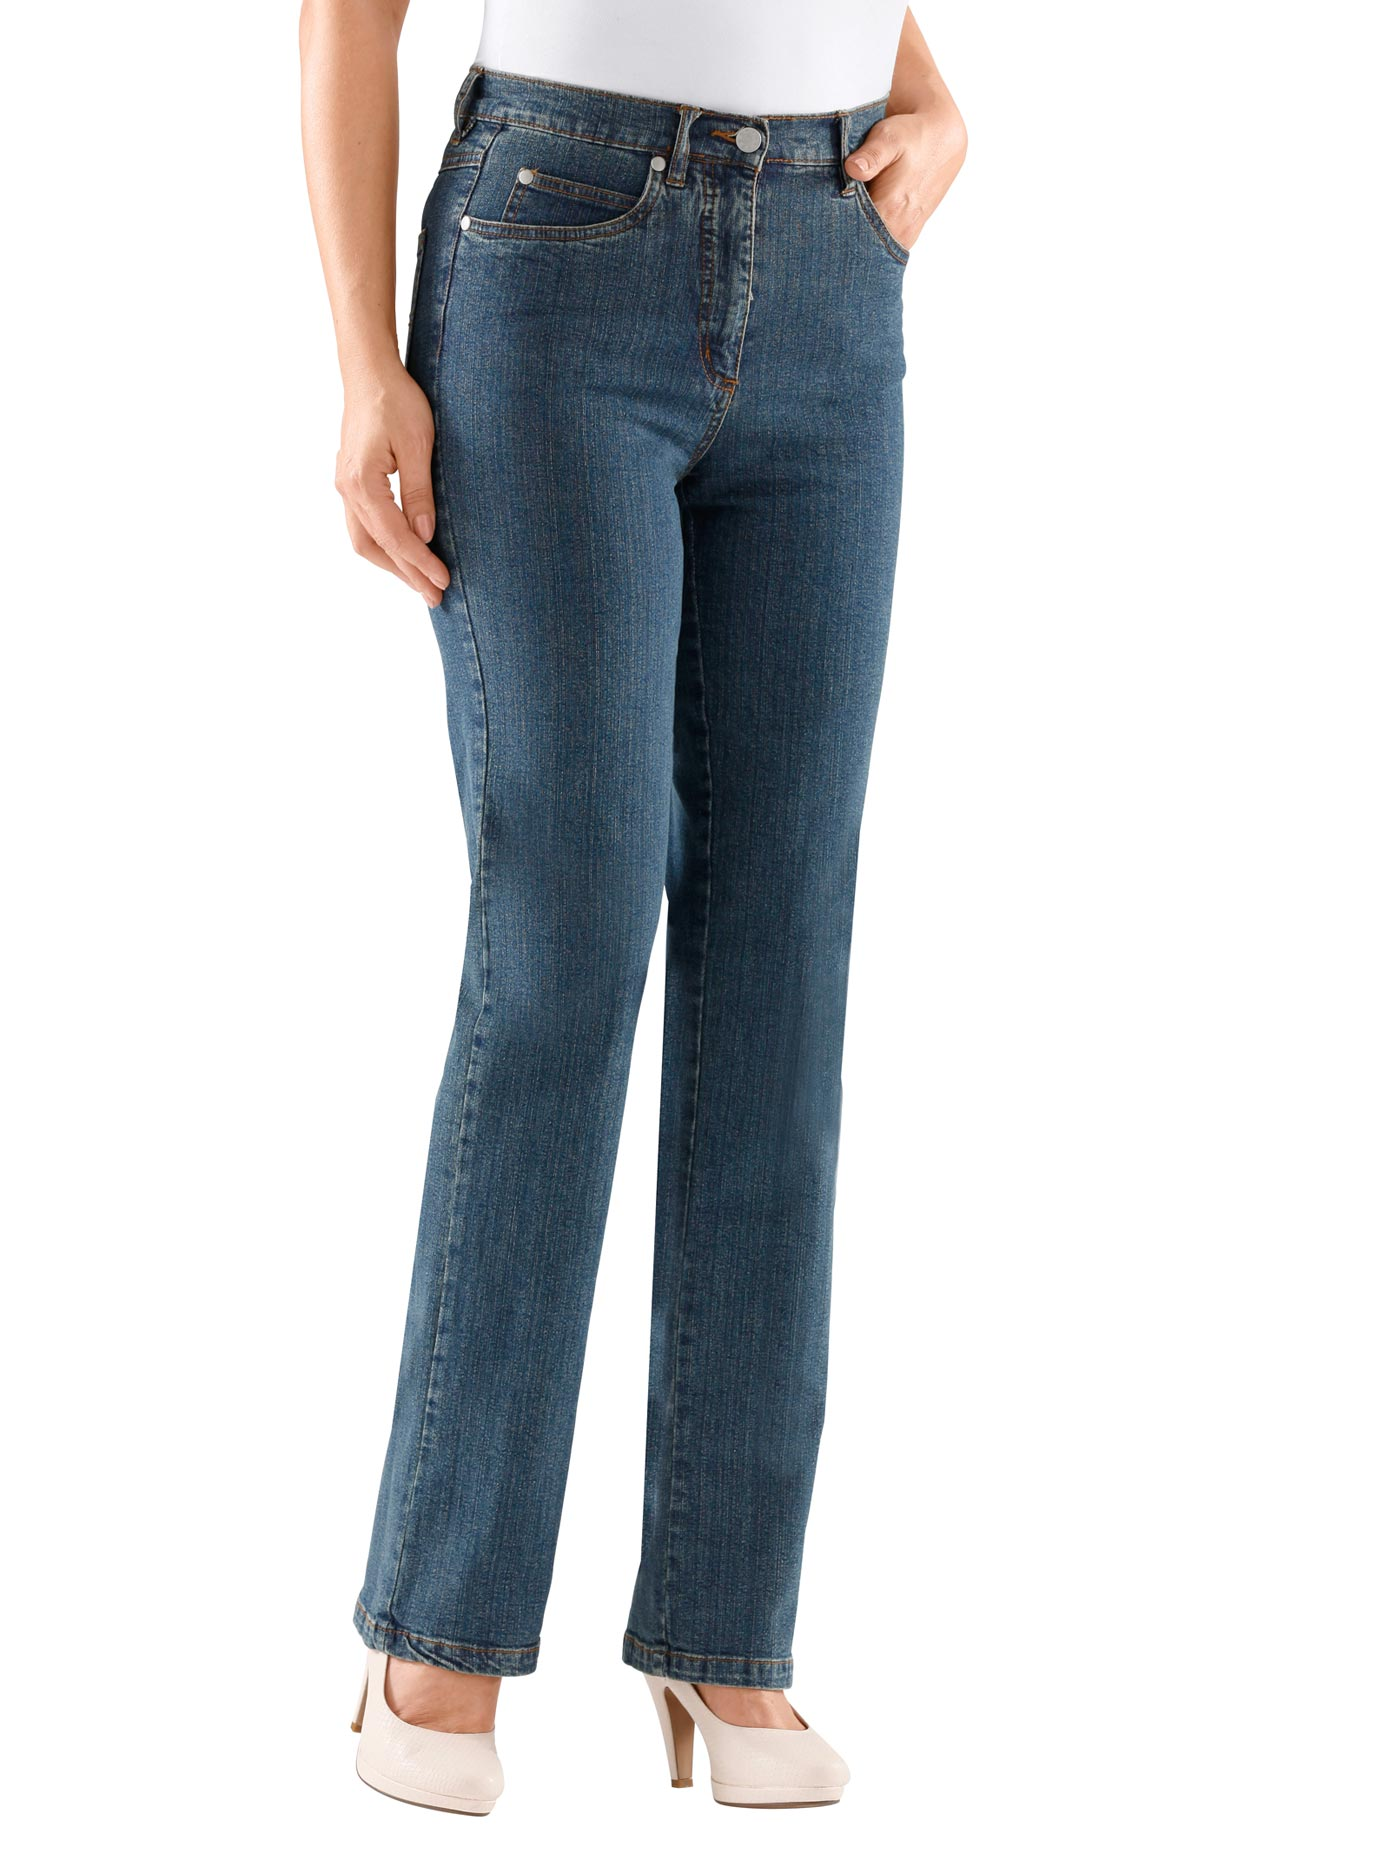 Casual Looks Jeans in bequemer Stretch-Qualität   Bekleidung > Jeans > Jeggings   Blau   Casual Looks